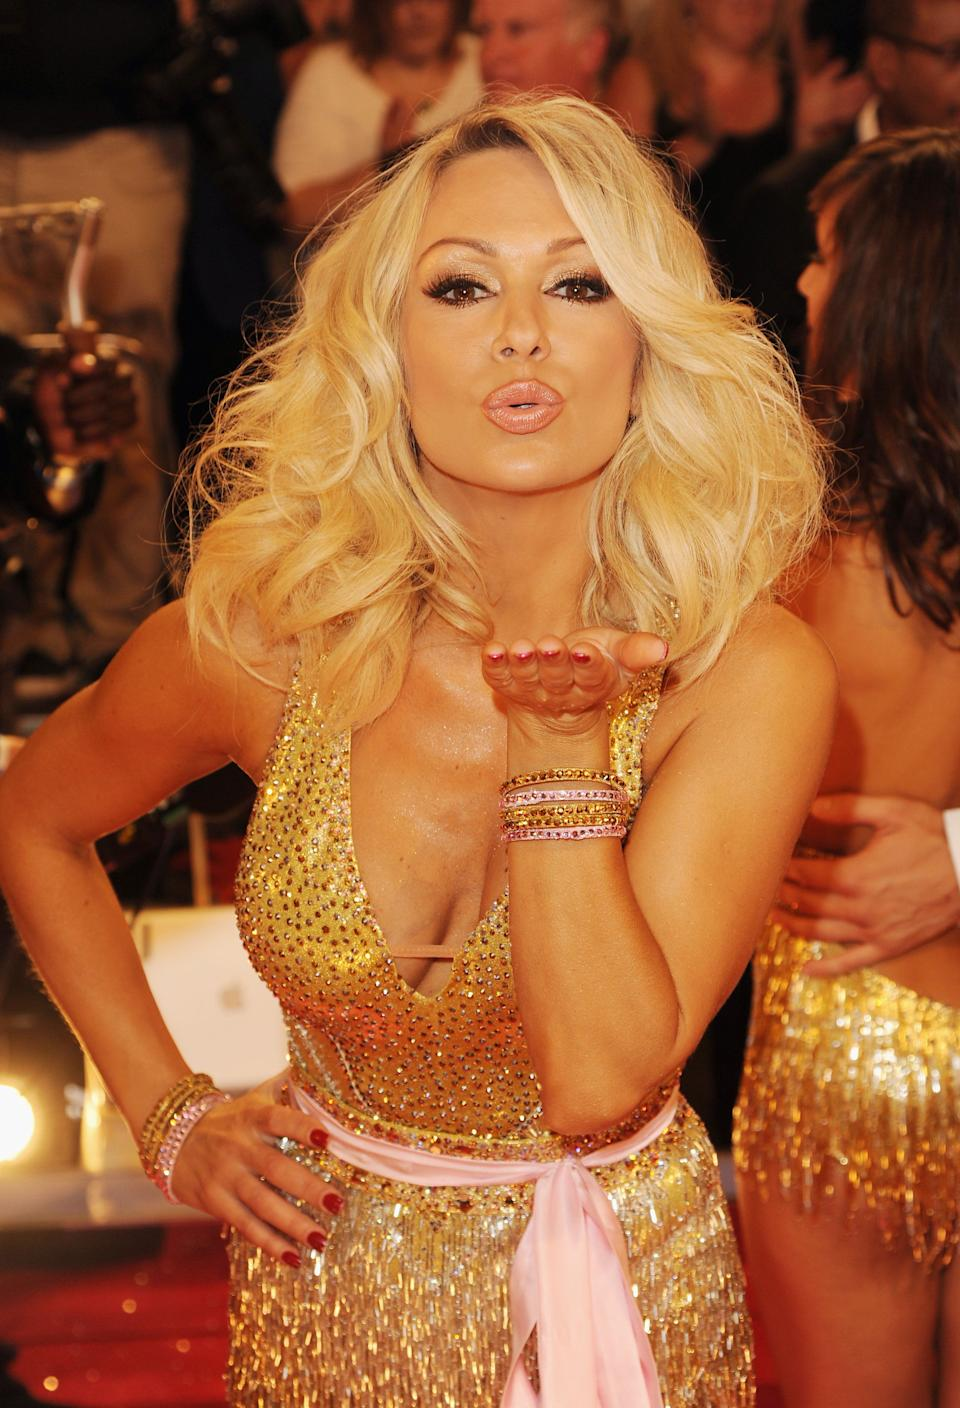 """On the subject of the 'curse', Kristina Rihanoff has some experience in that domain. She got together with Joe Calzaghe shortly after their time on the show, splitting in 2013.<br /><br />It was around this time that she was partnered with Ben Cohen, who would later become the father of her child.<br /><br />Judge Craig Revel Horwood later joked that Kristina was 'gutted' to be partnered with Daniel O'Donnell in 2015, adding: 'It was rather obvious she wasn't going to get a hot, young celeb after everything that's happened.<br /><br />""""It's natural to fall in love with your dance partner when you're spending so much time together and Kristina managed it a few times!""""<br /><br />Ouch."""